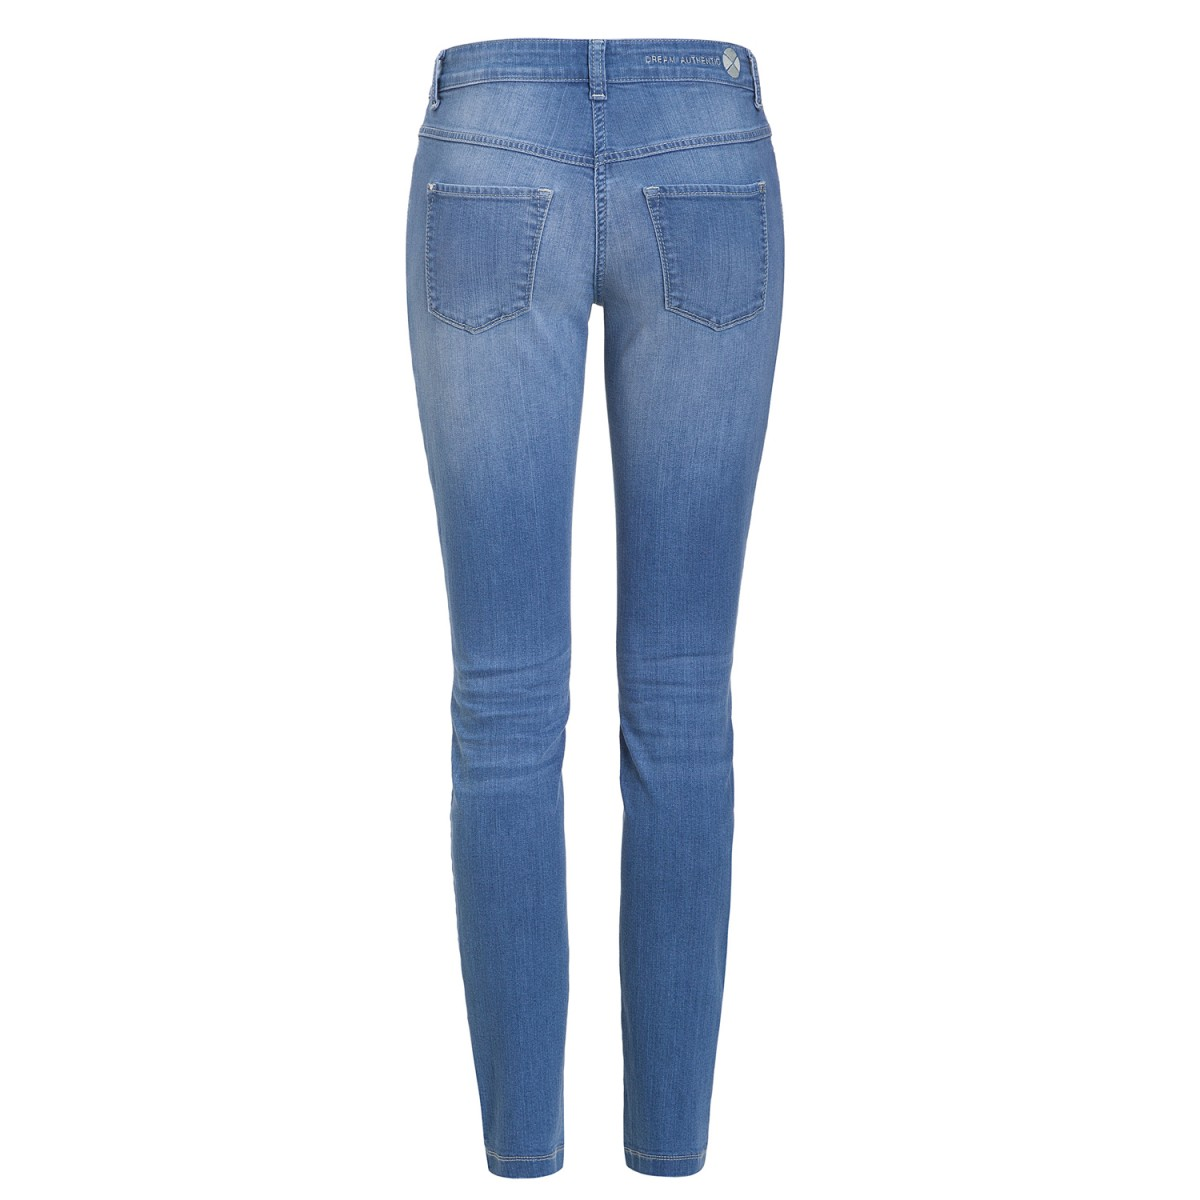 MAC Jeans Dream Skinny Authentic Mid Blue Used 5457 0375L D530-33